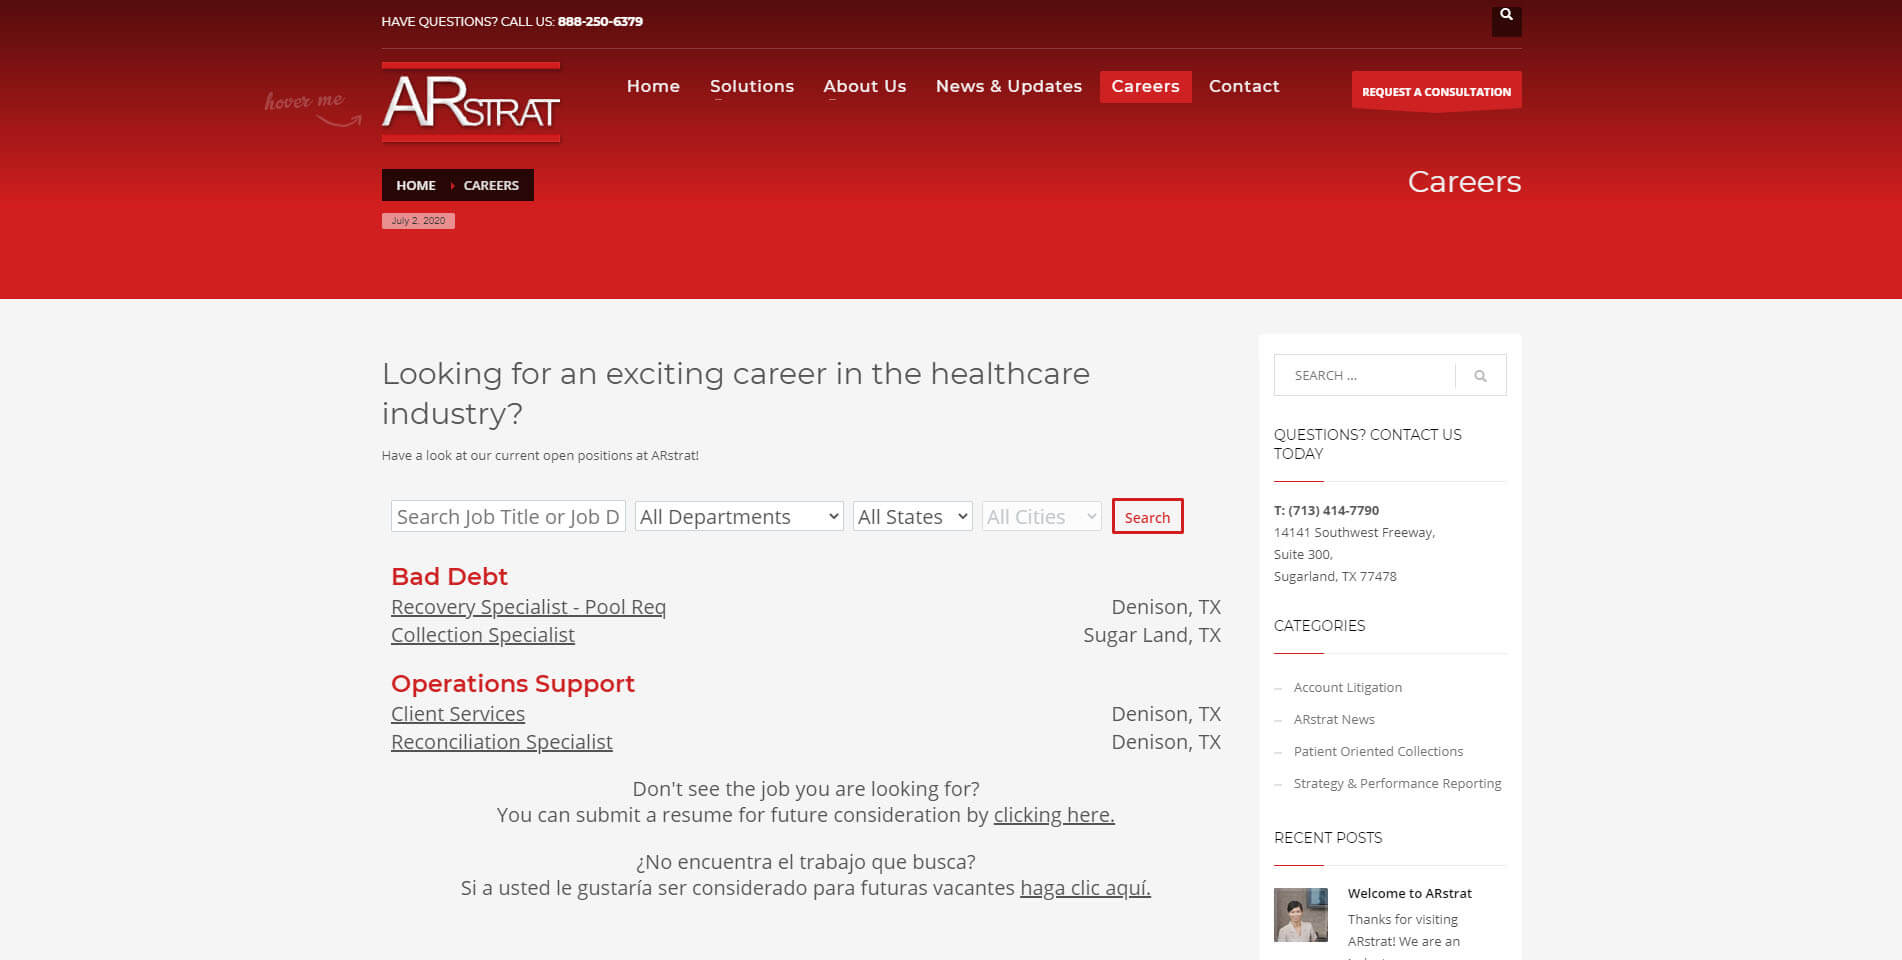 An image of the careers page of ARstrat, website created by Not Fade Away Marketing